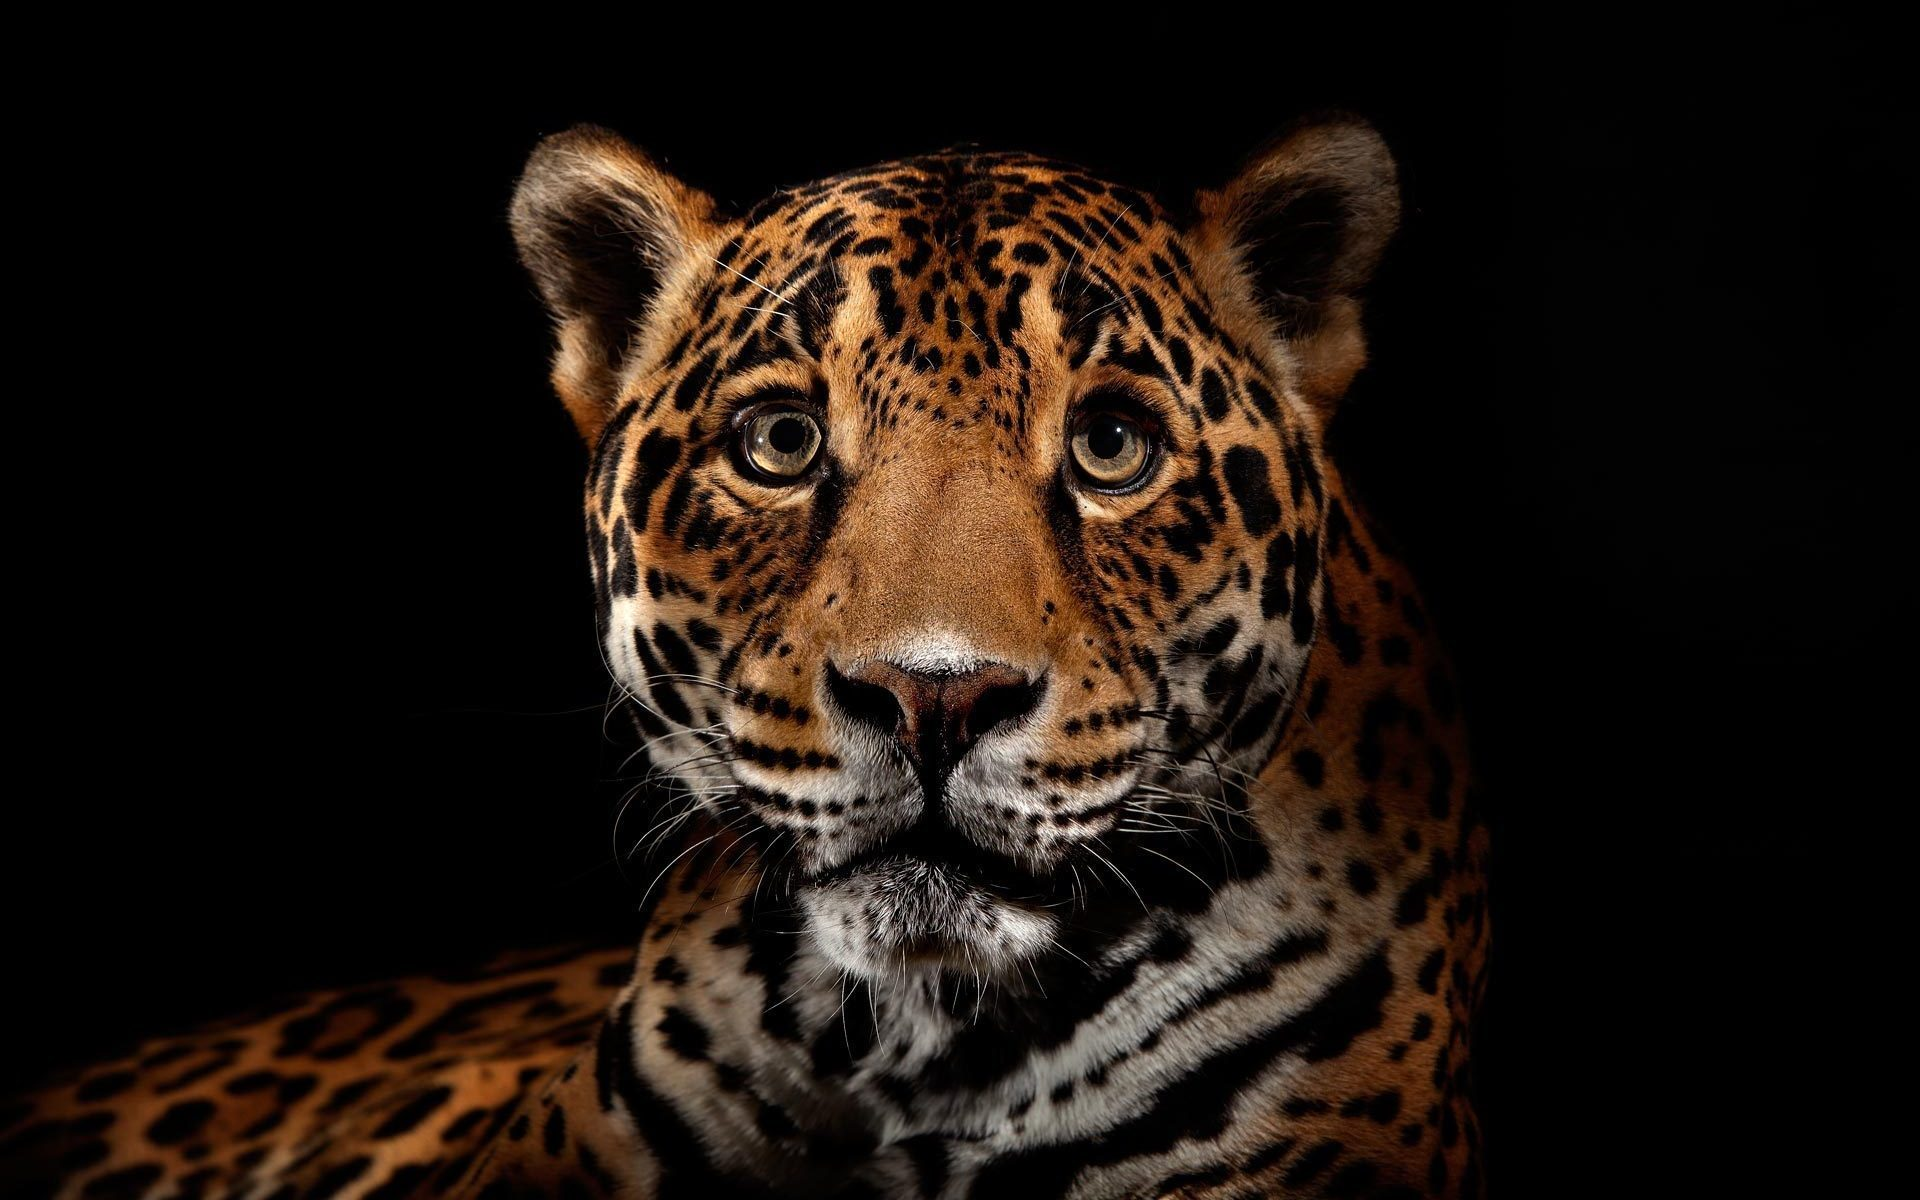 20072 download wallpaper Animals, Leopards screensavers and pictures for free